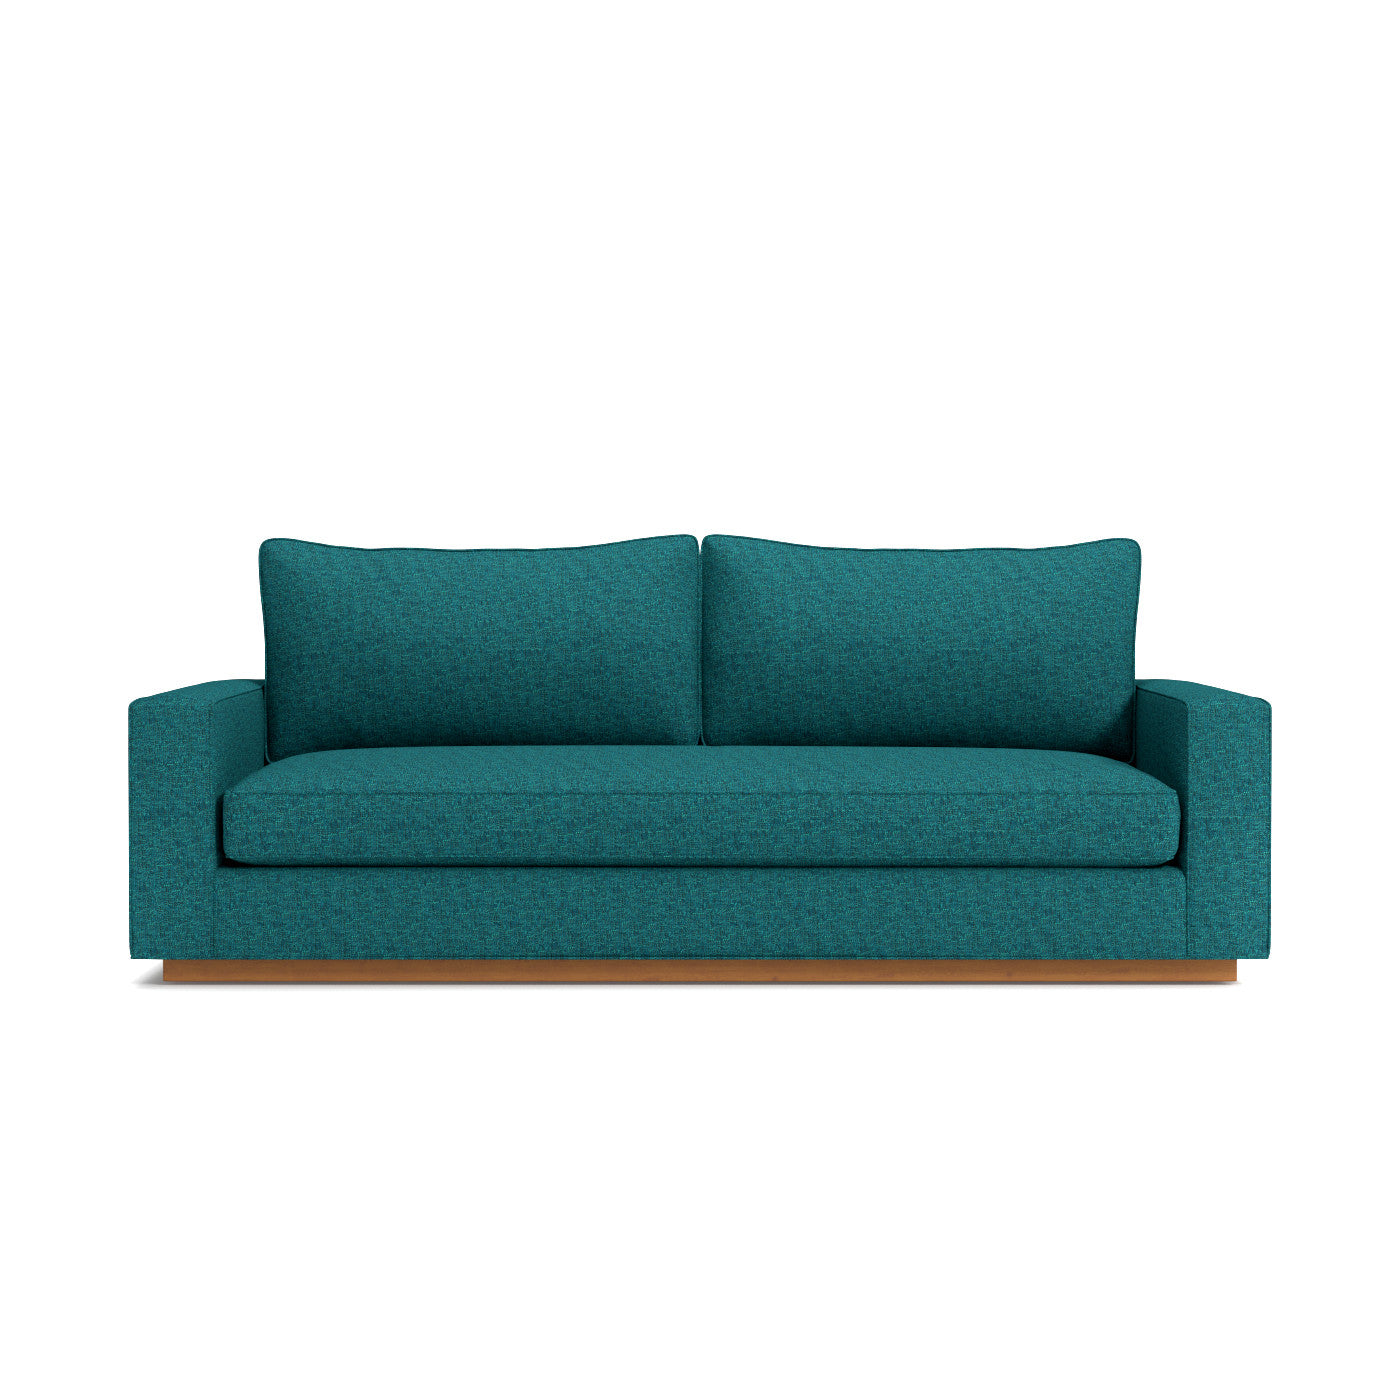 Harper Sleeper Sofa Queen Size CHOICE OF FABRICS   Apt2B   13